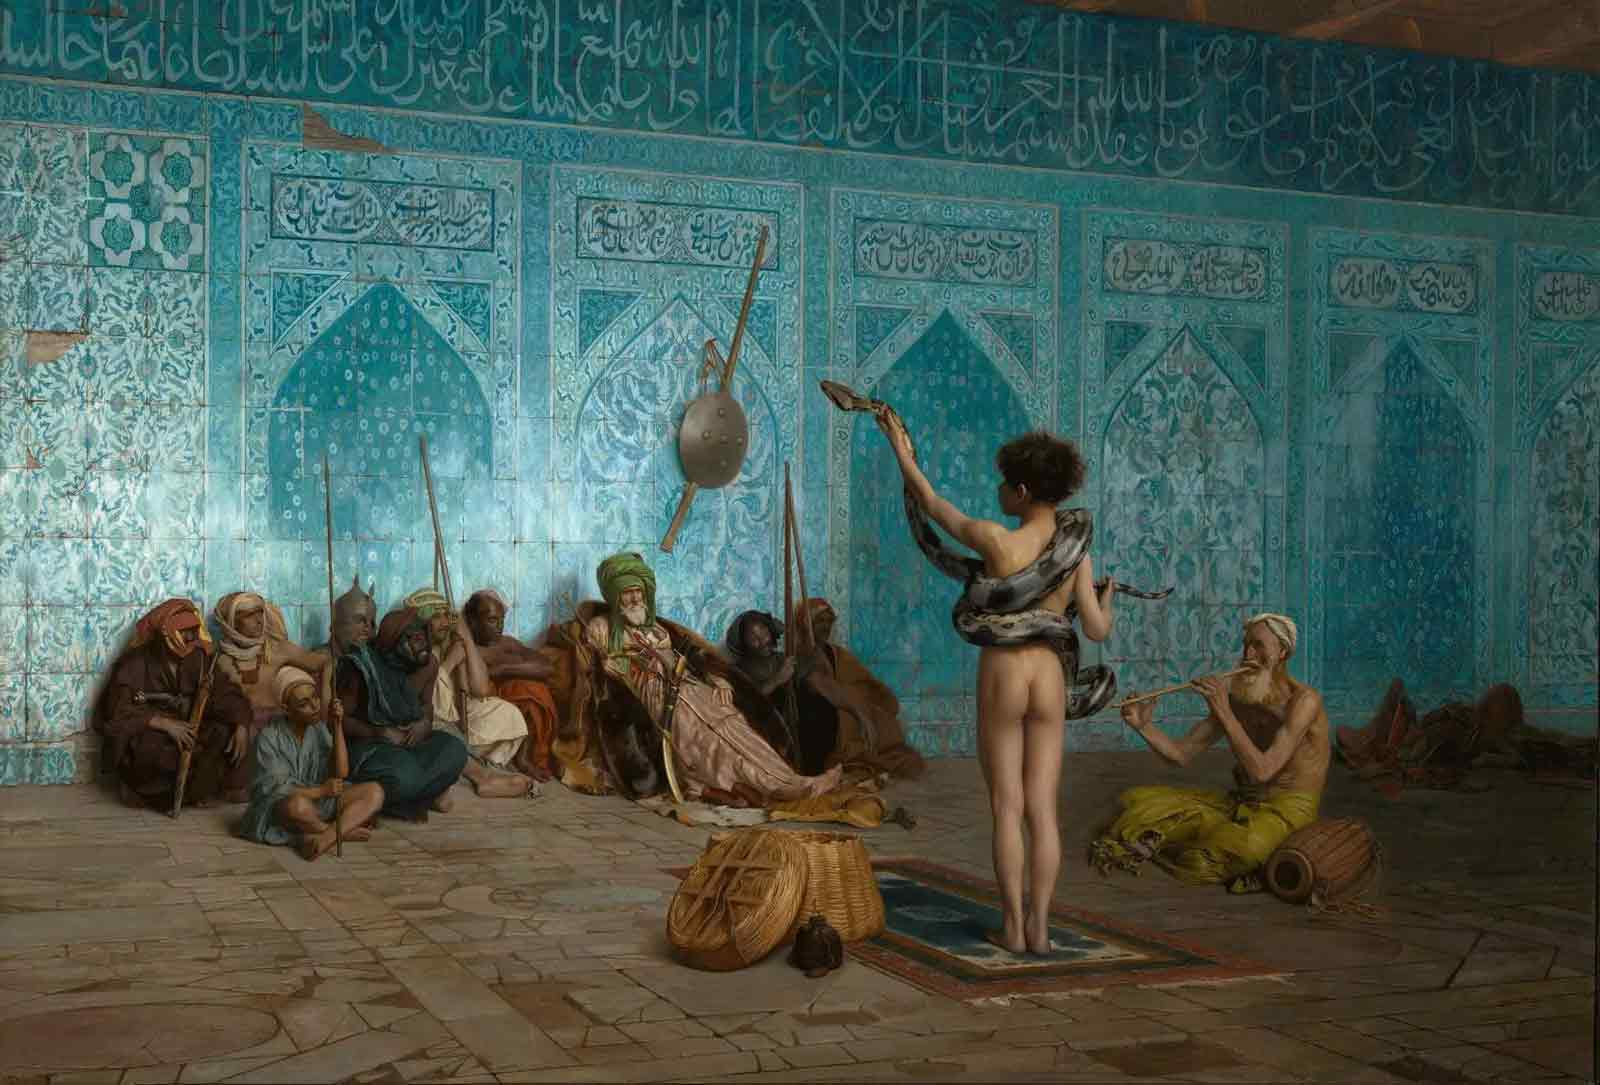 Oil painting of a snake charmer, done in an Orientalist style.